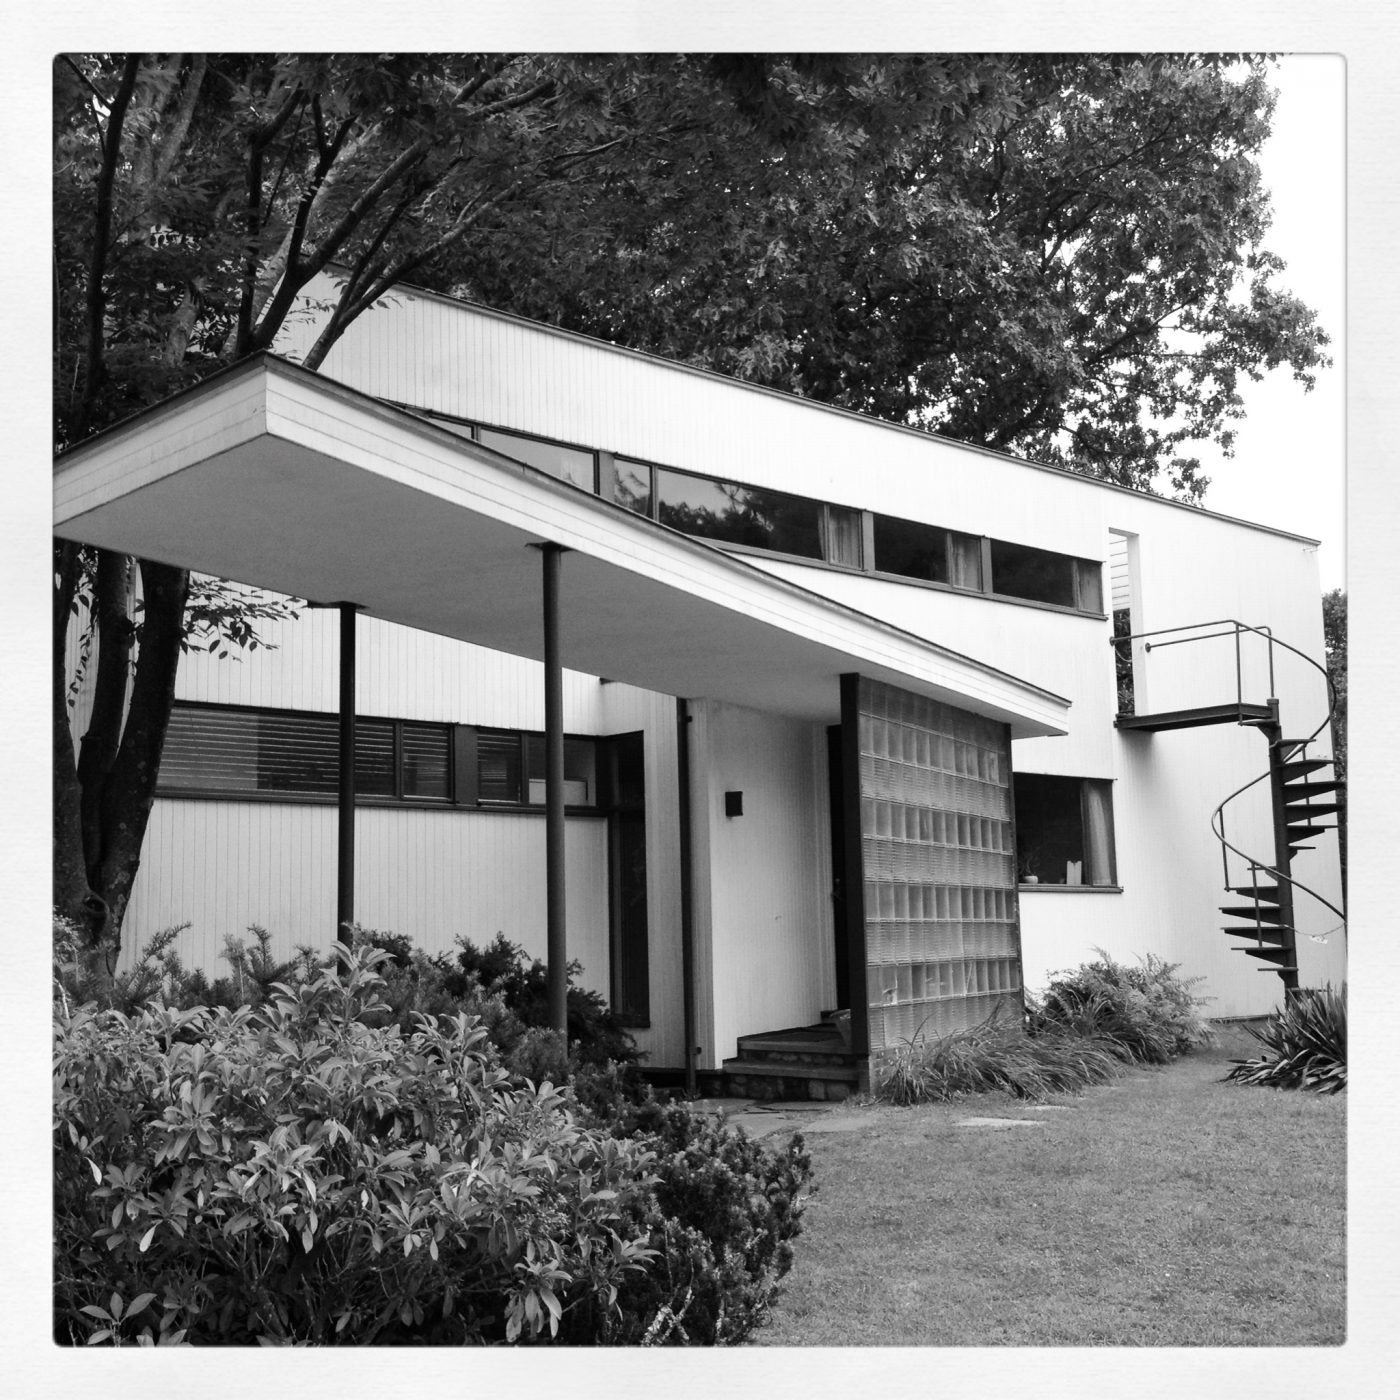 The Gropius House